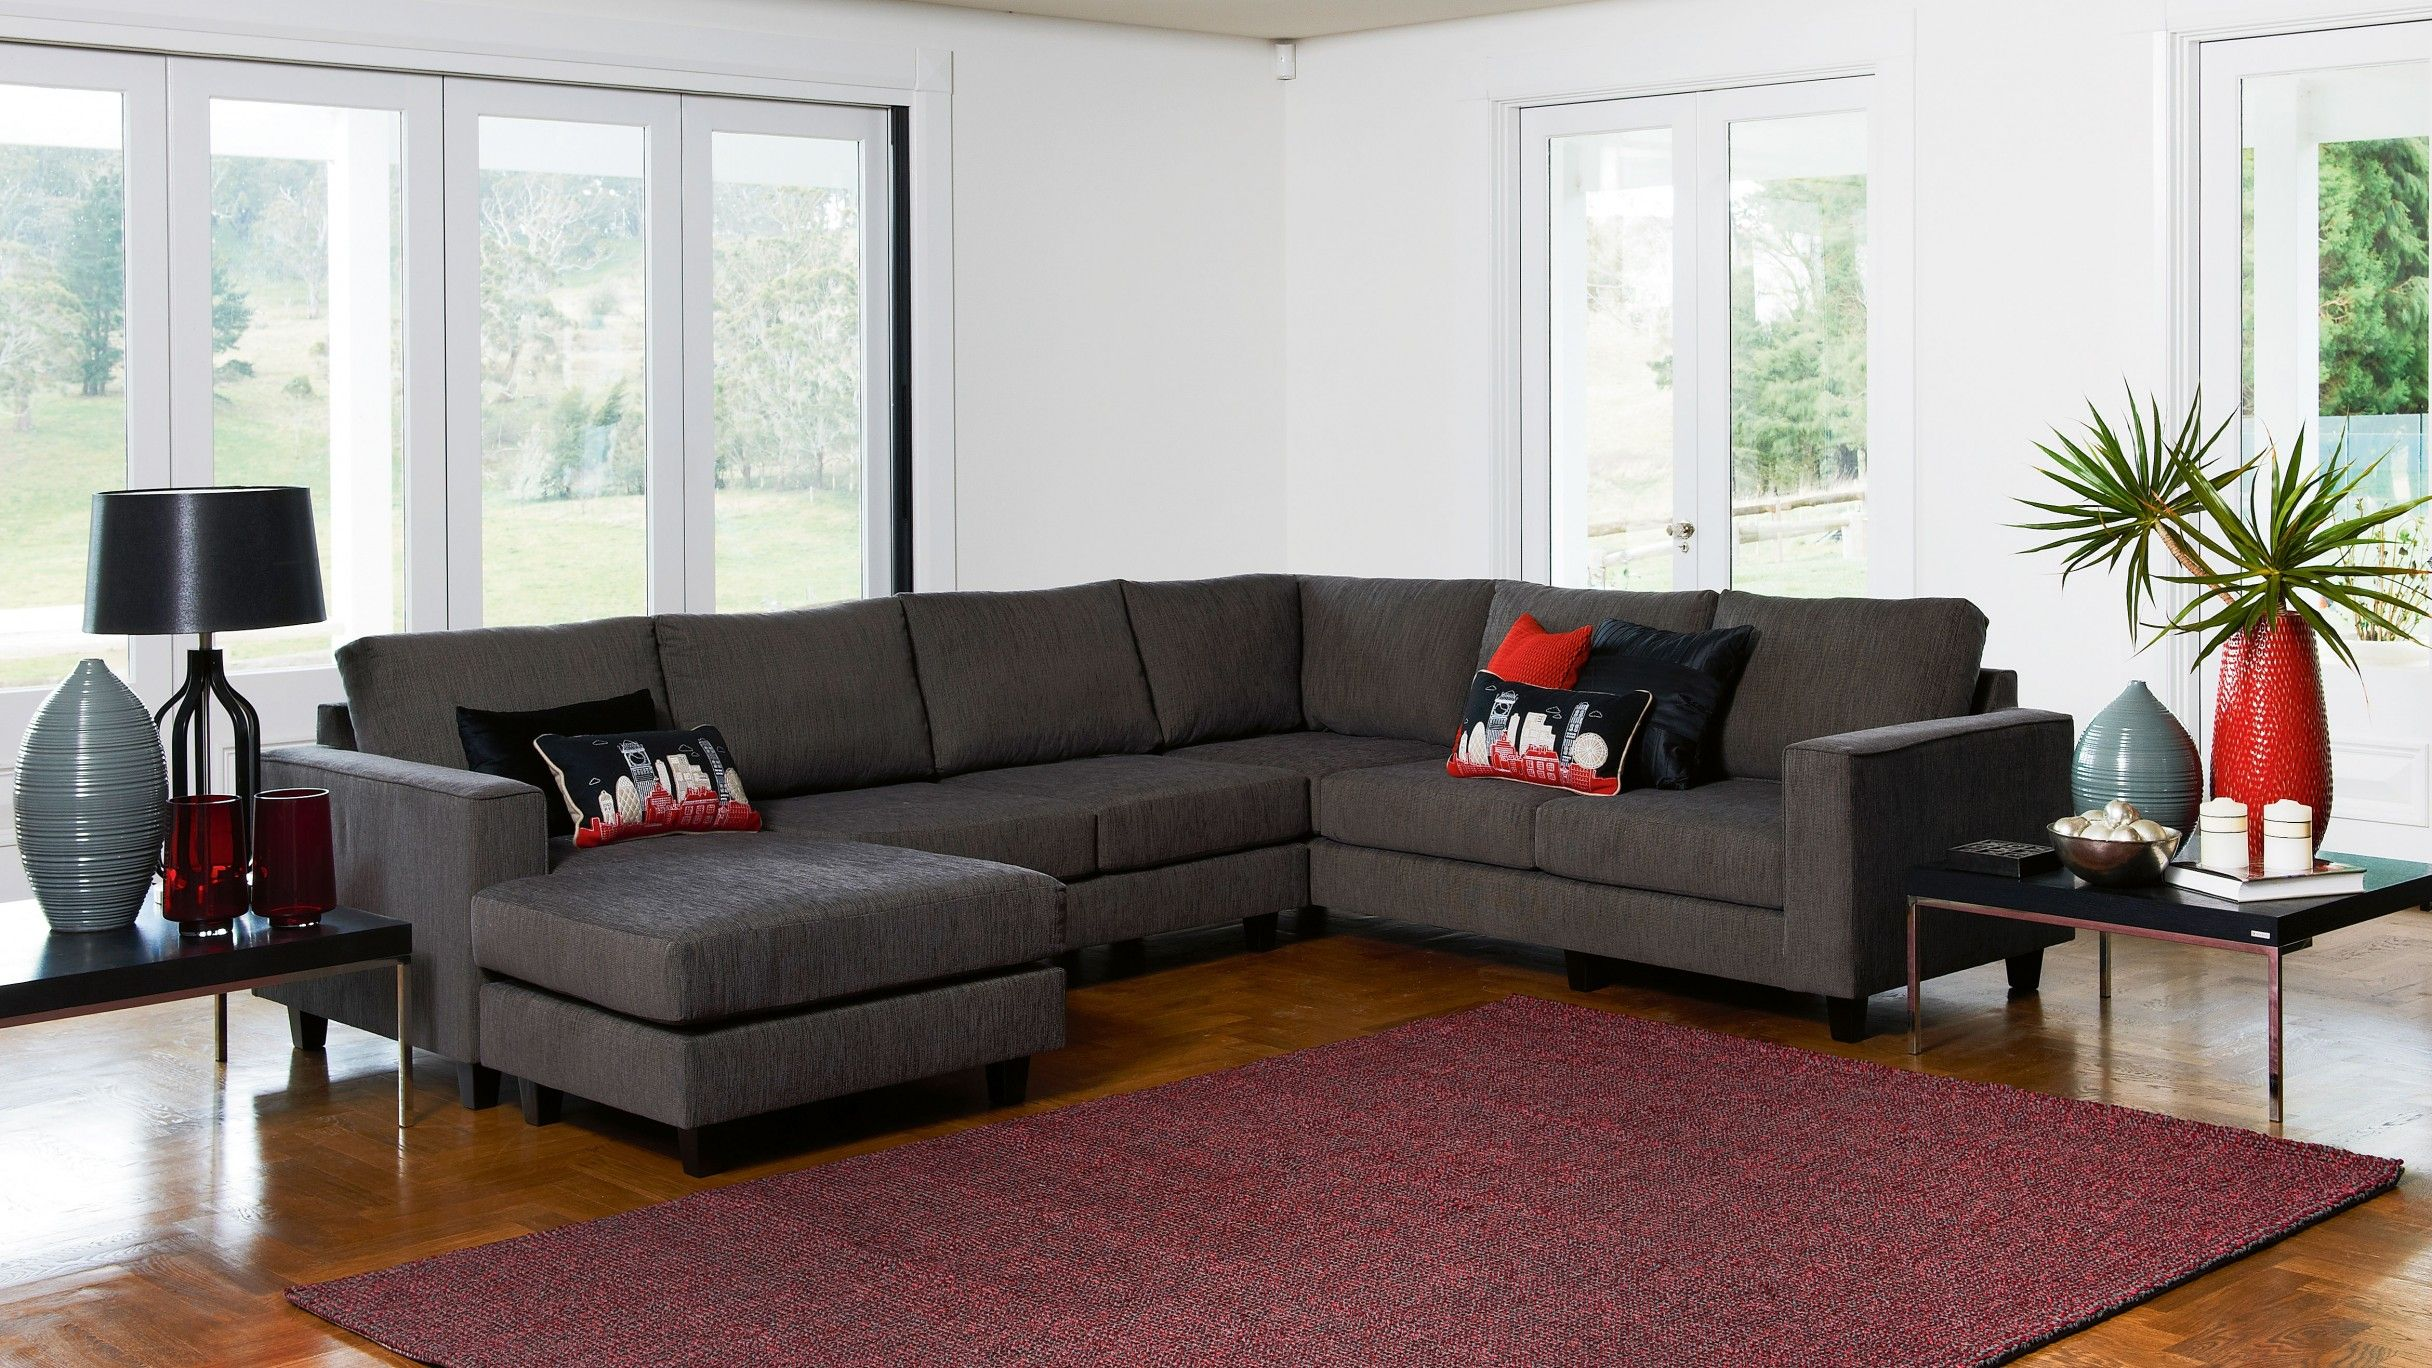 Space Invader Couch Living Room Sectional Indication Of Style Not Colour Yarra